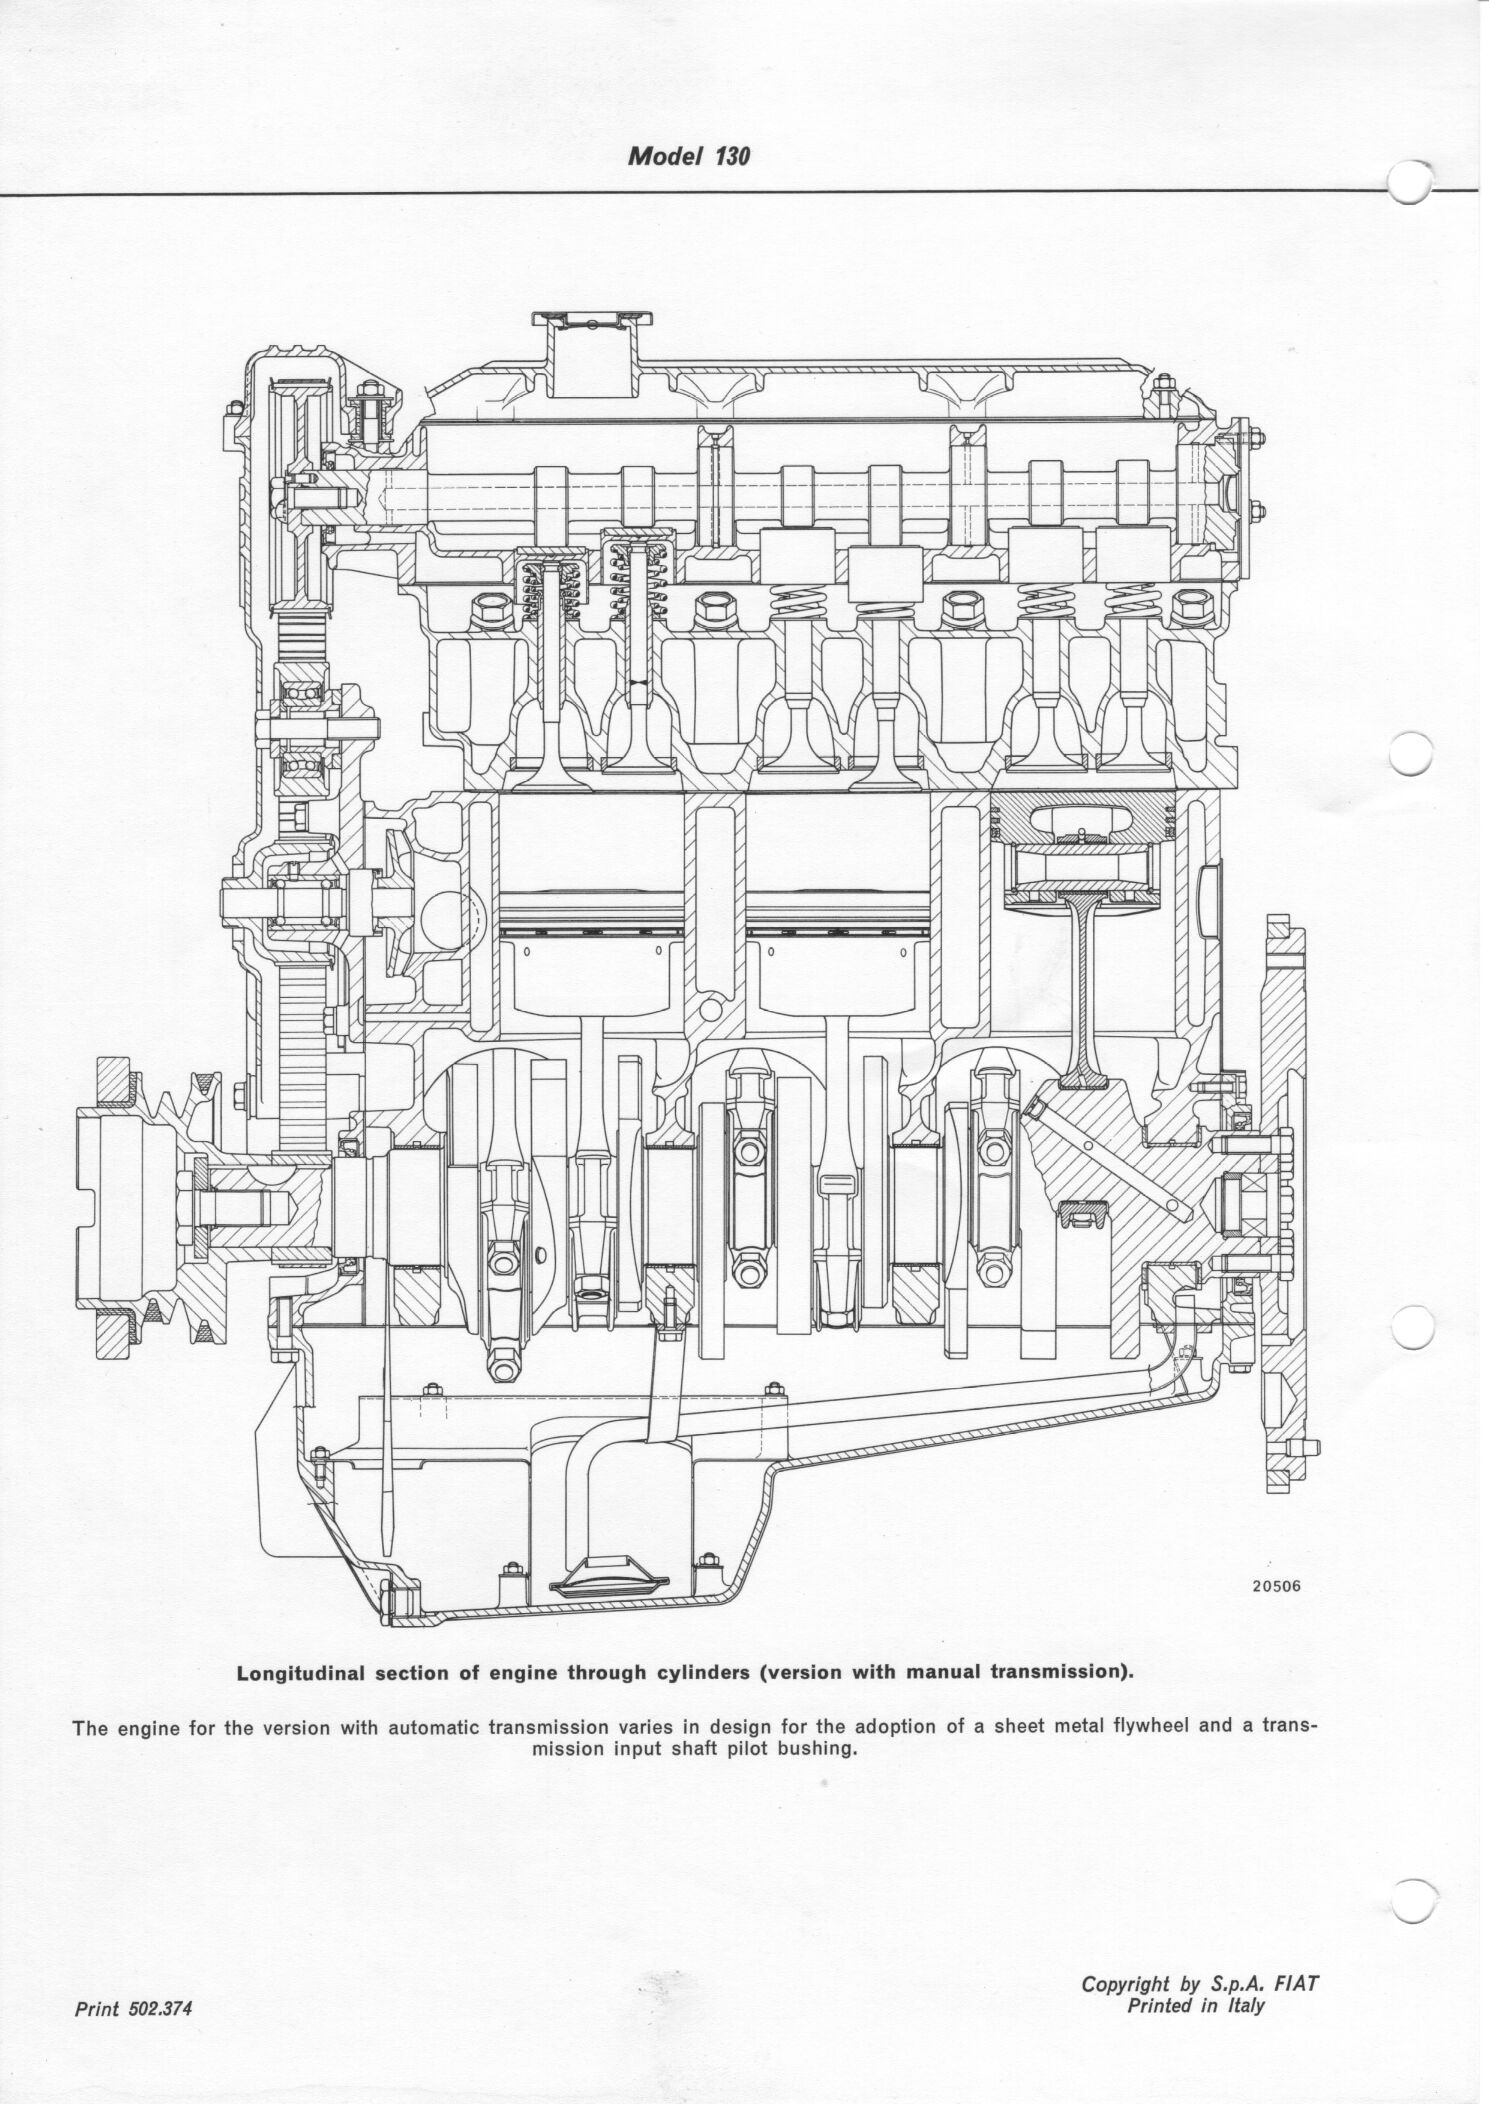 small resolution of fiat 130 engine manual fiat 130 heaven diagram fiat manual fiat engine schematics